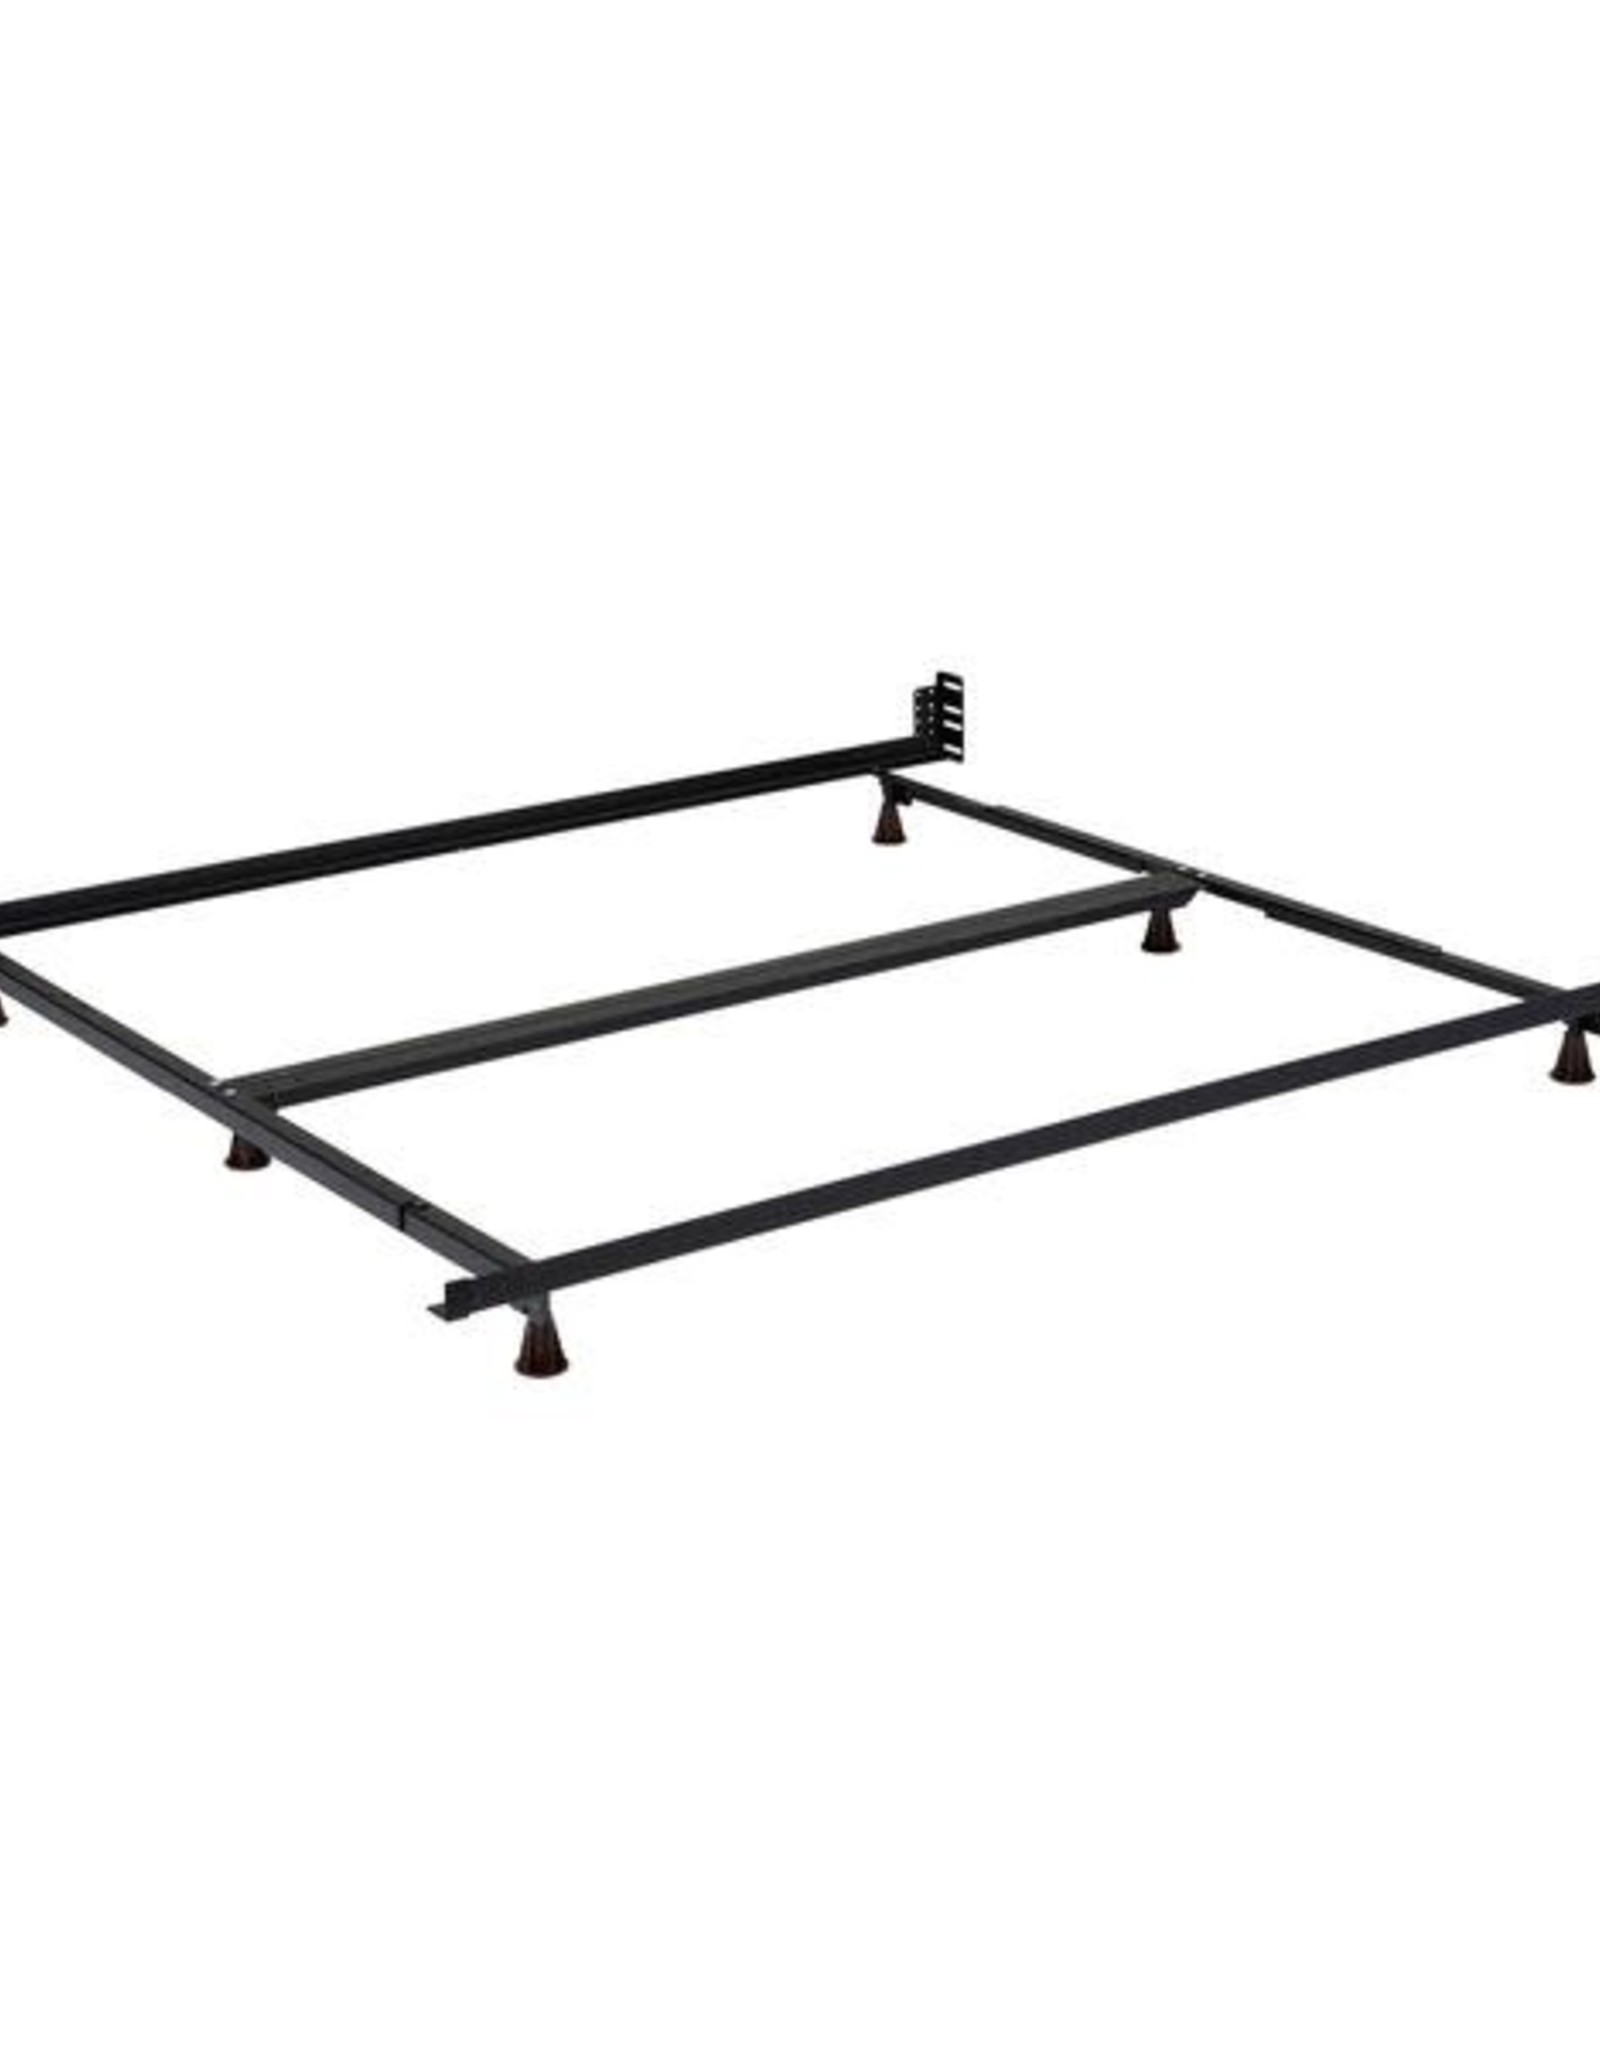 Low Profile Bed Frame